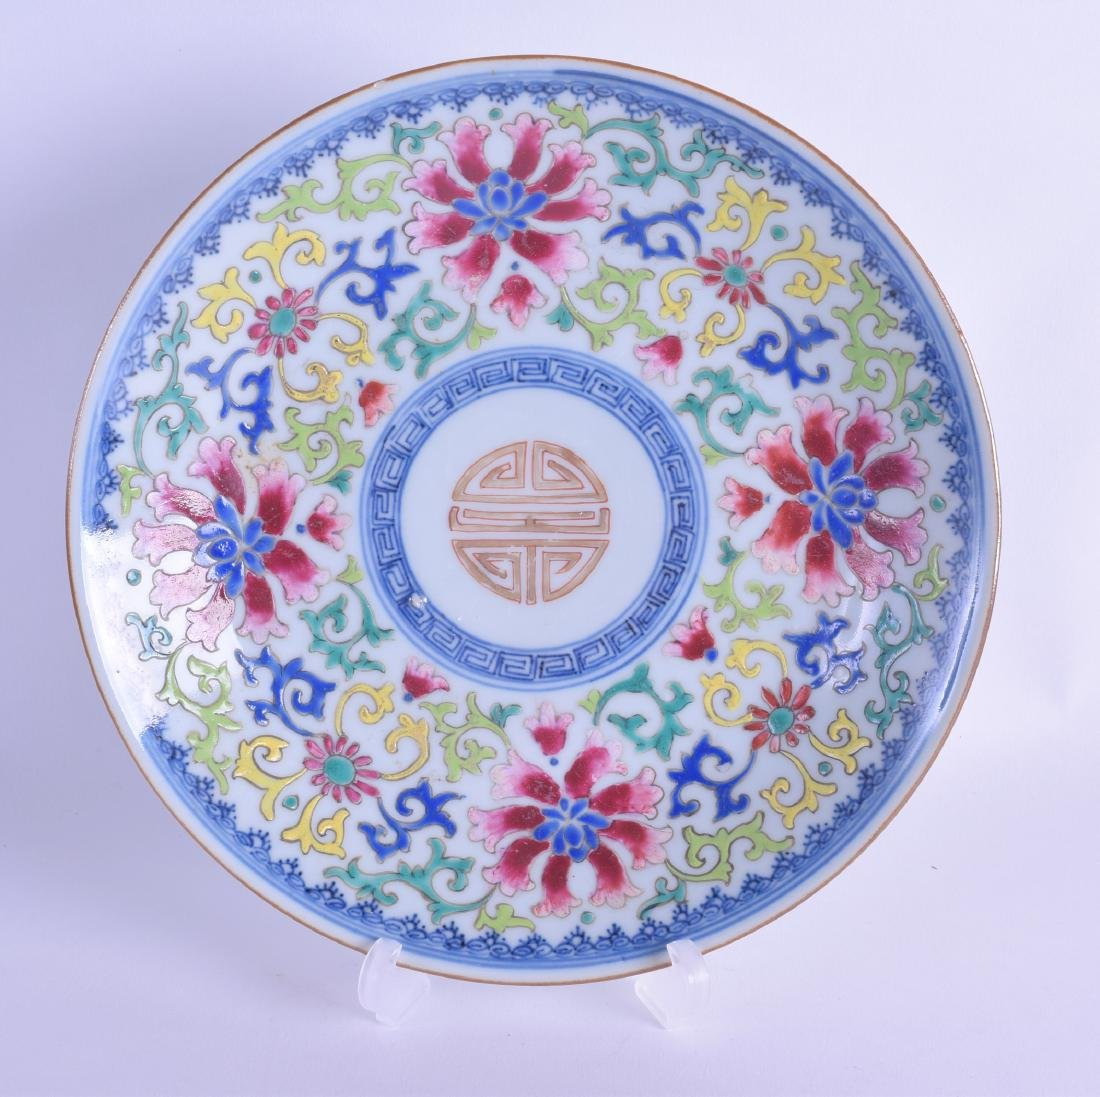 AN 18TH CENTURY CHINESE FAMILLE ROSE PORCELAIN SAUCER